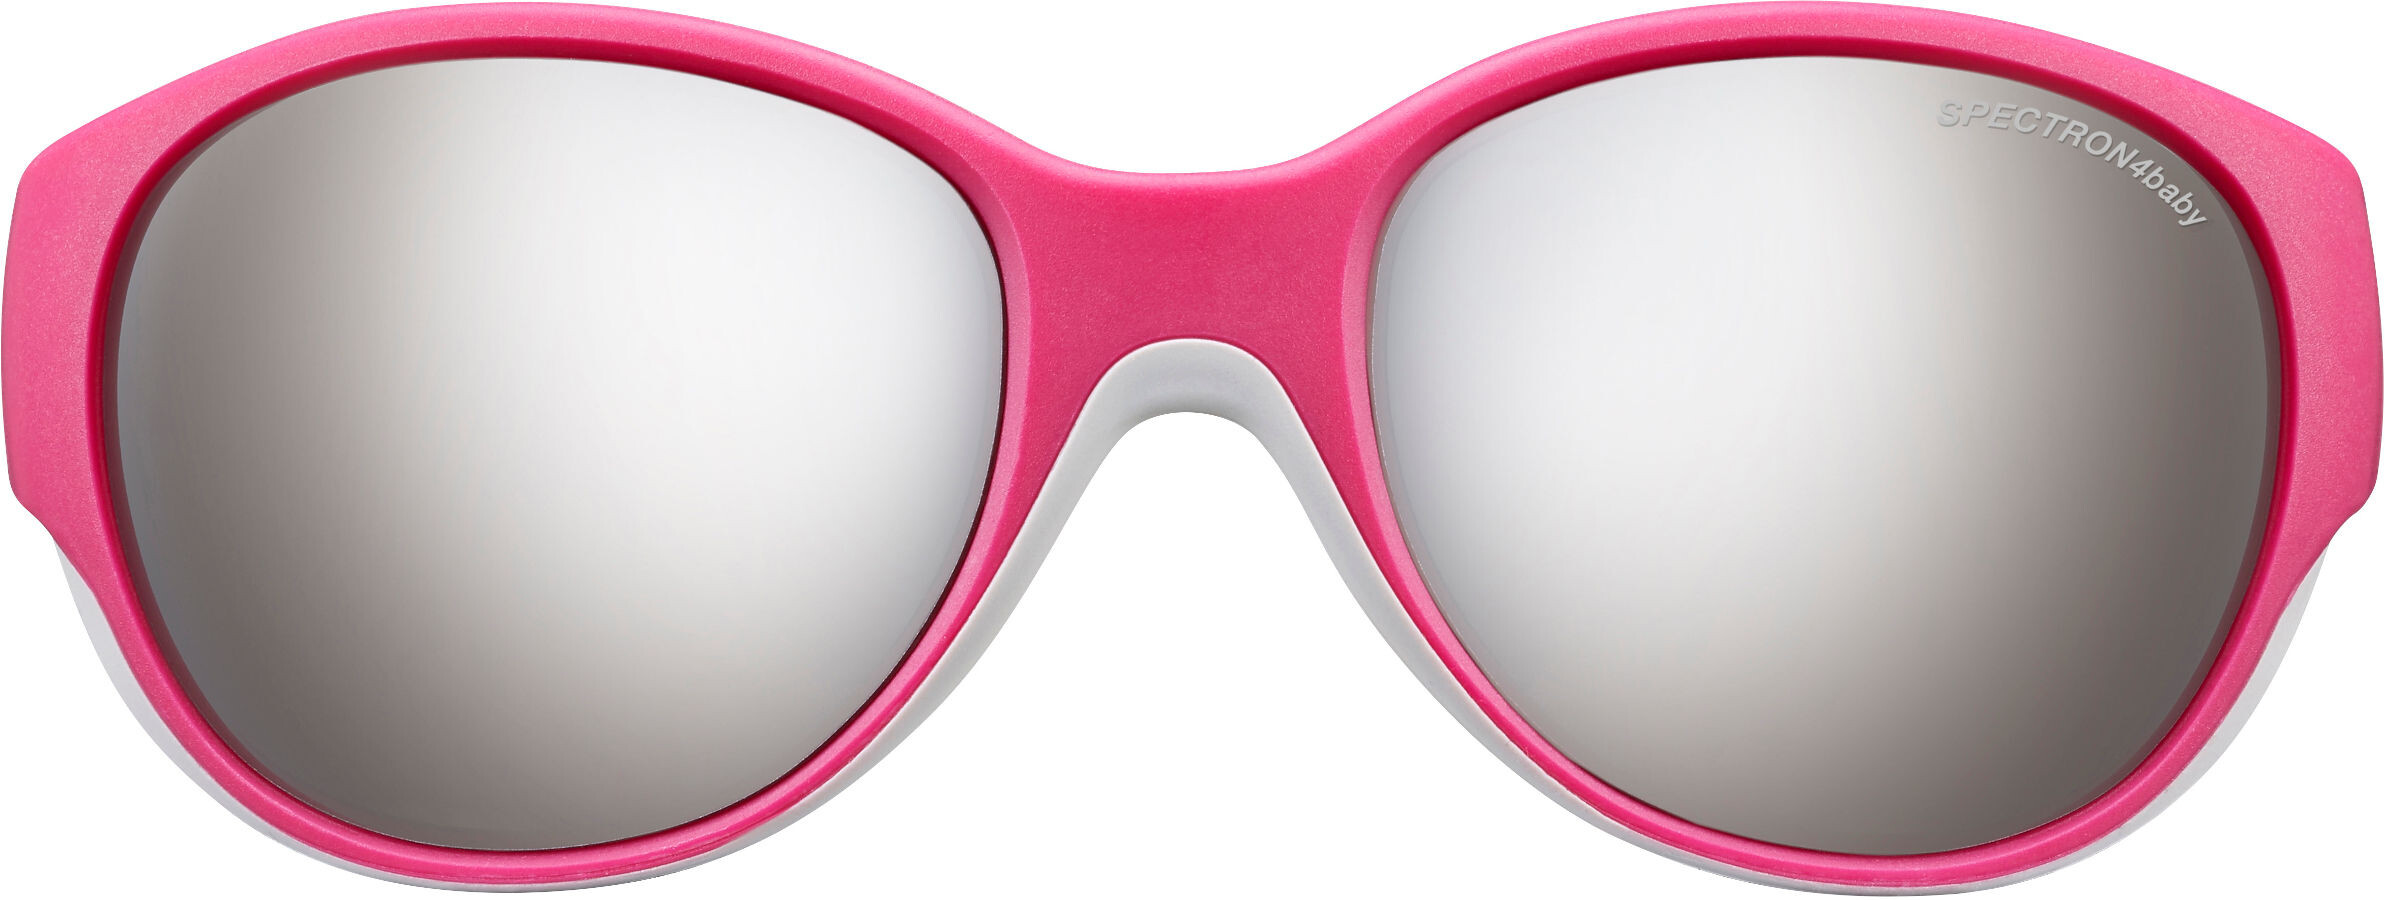 9d017125ac83 Julbo Lily Spectron 4 Glasses Children 4-6Y grey pink at Addnature.co.uk